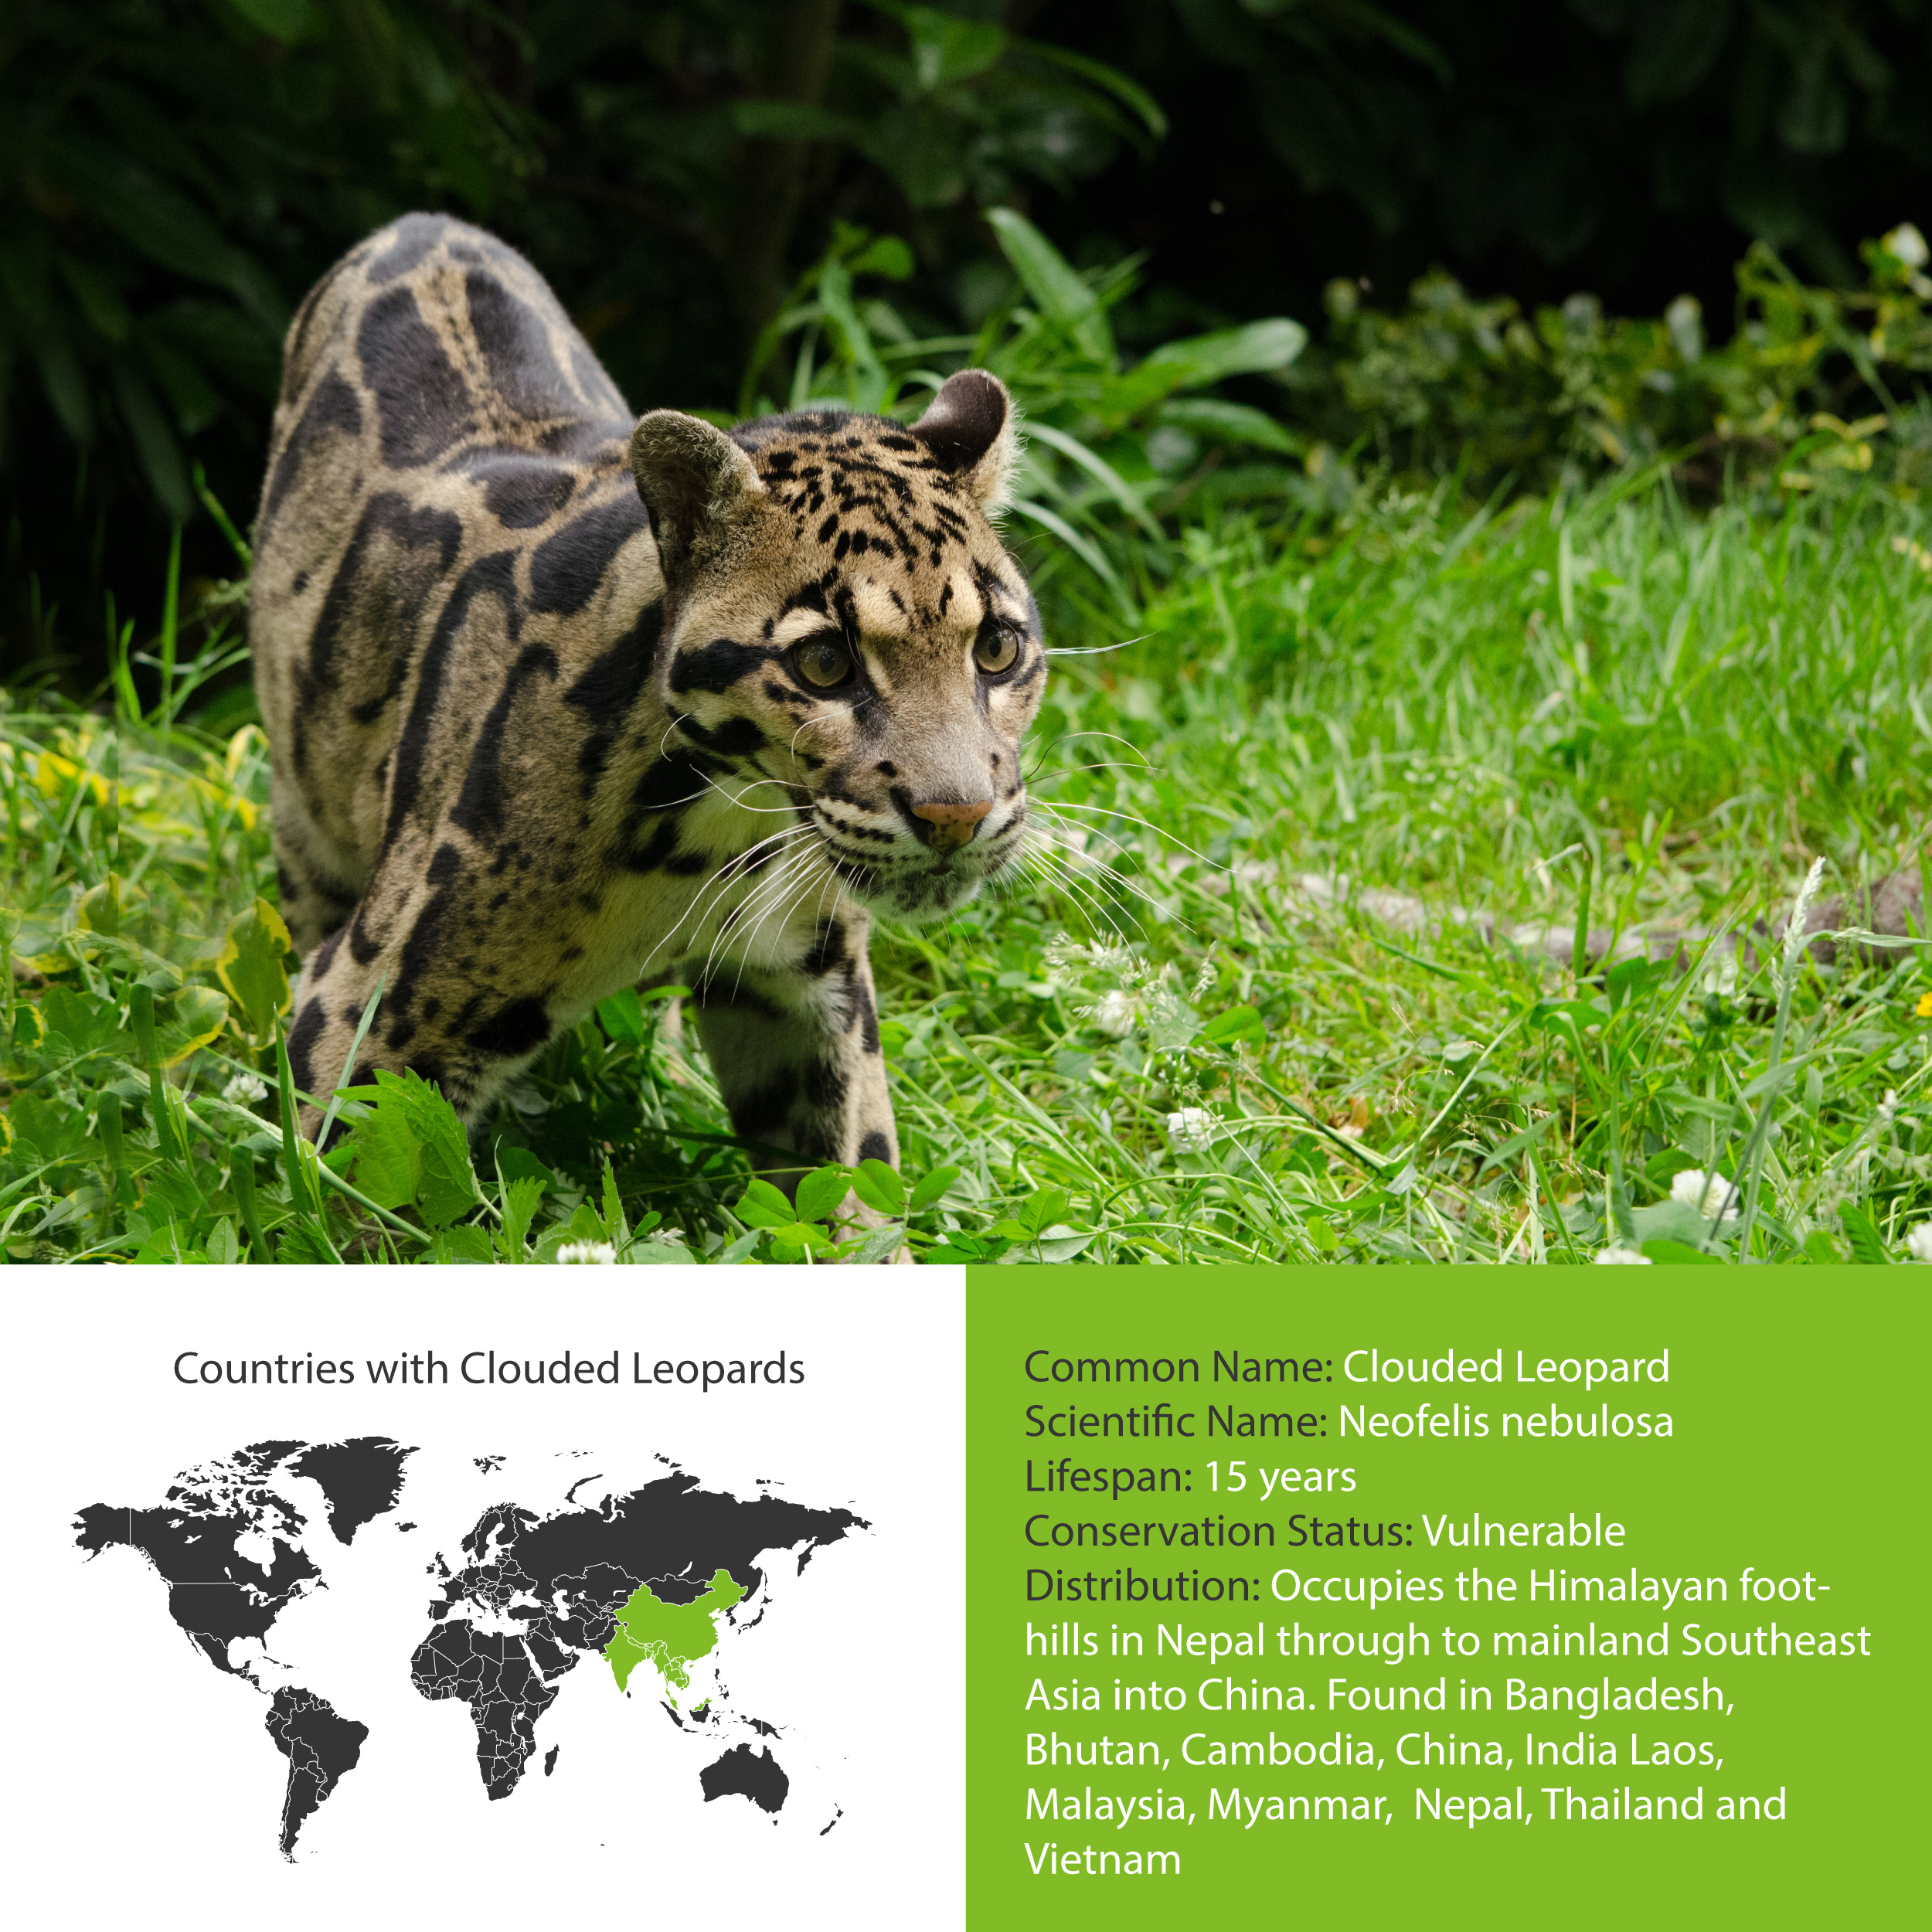 Clouded Leopard Distribution